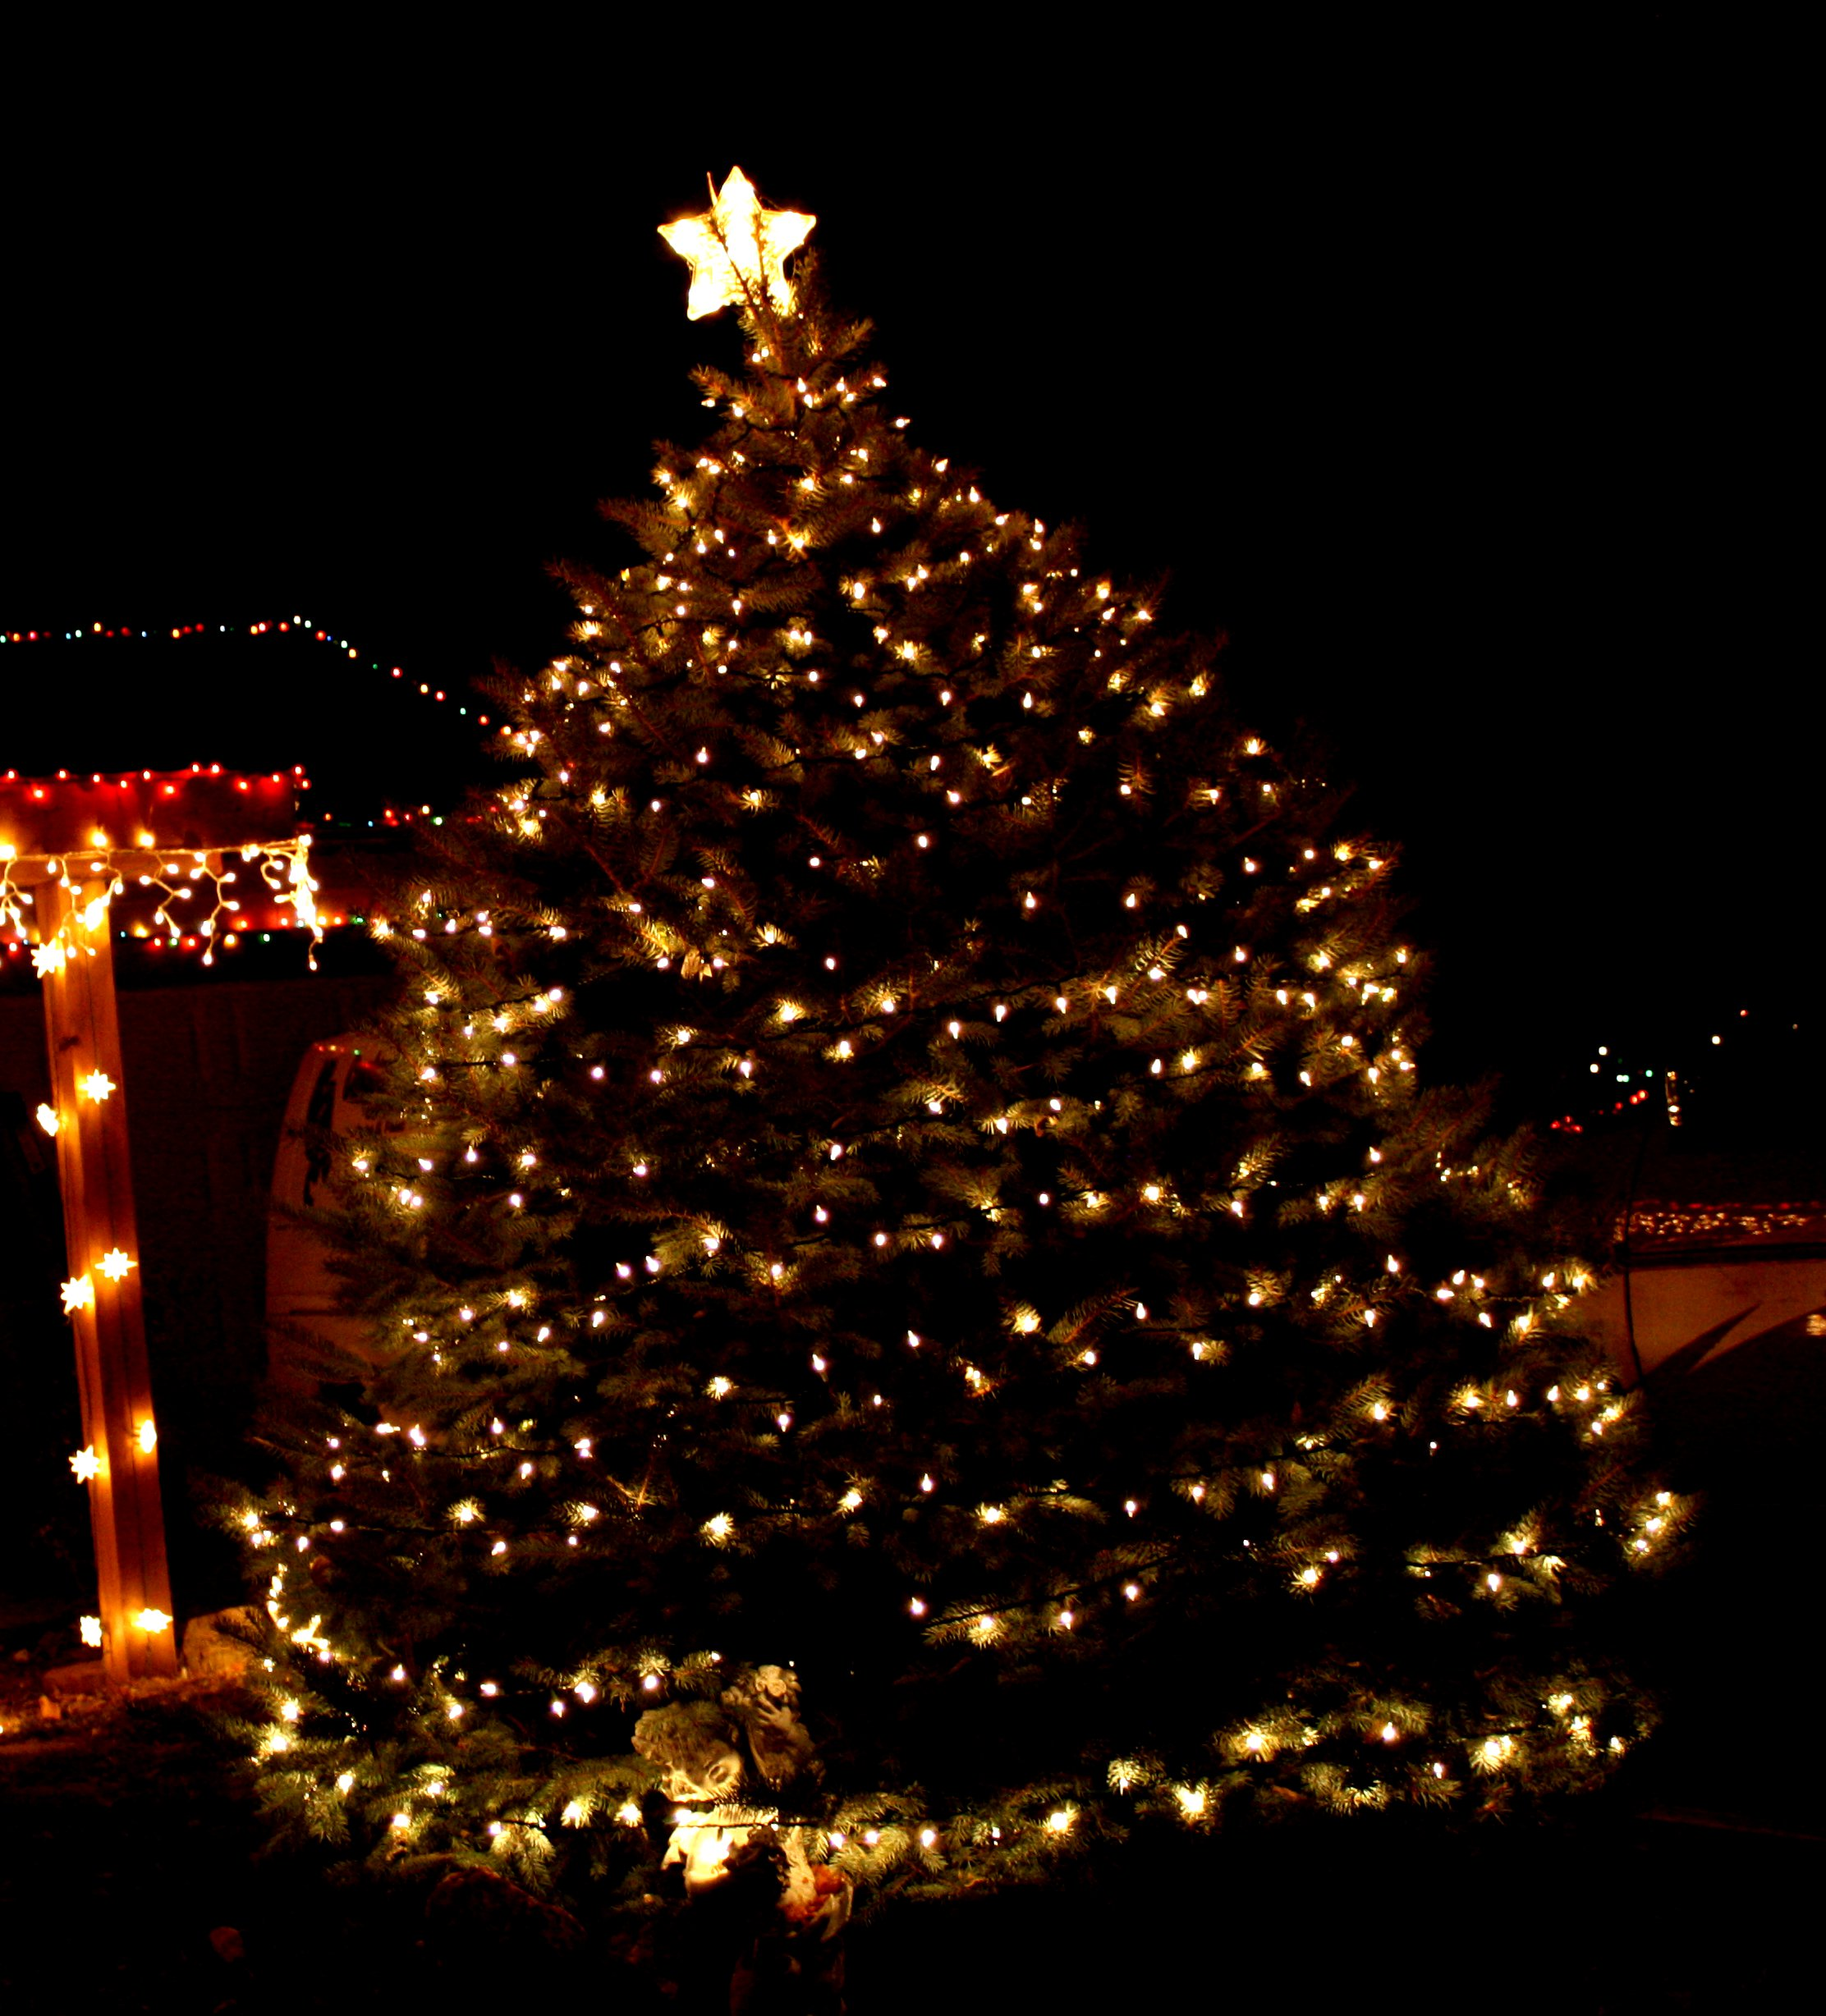 Large outdoor xmas tree lights outdoor designs tree with white lights picture free photograph photos workwithnaturefo